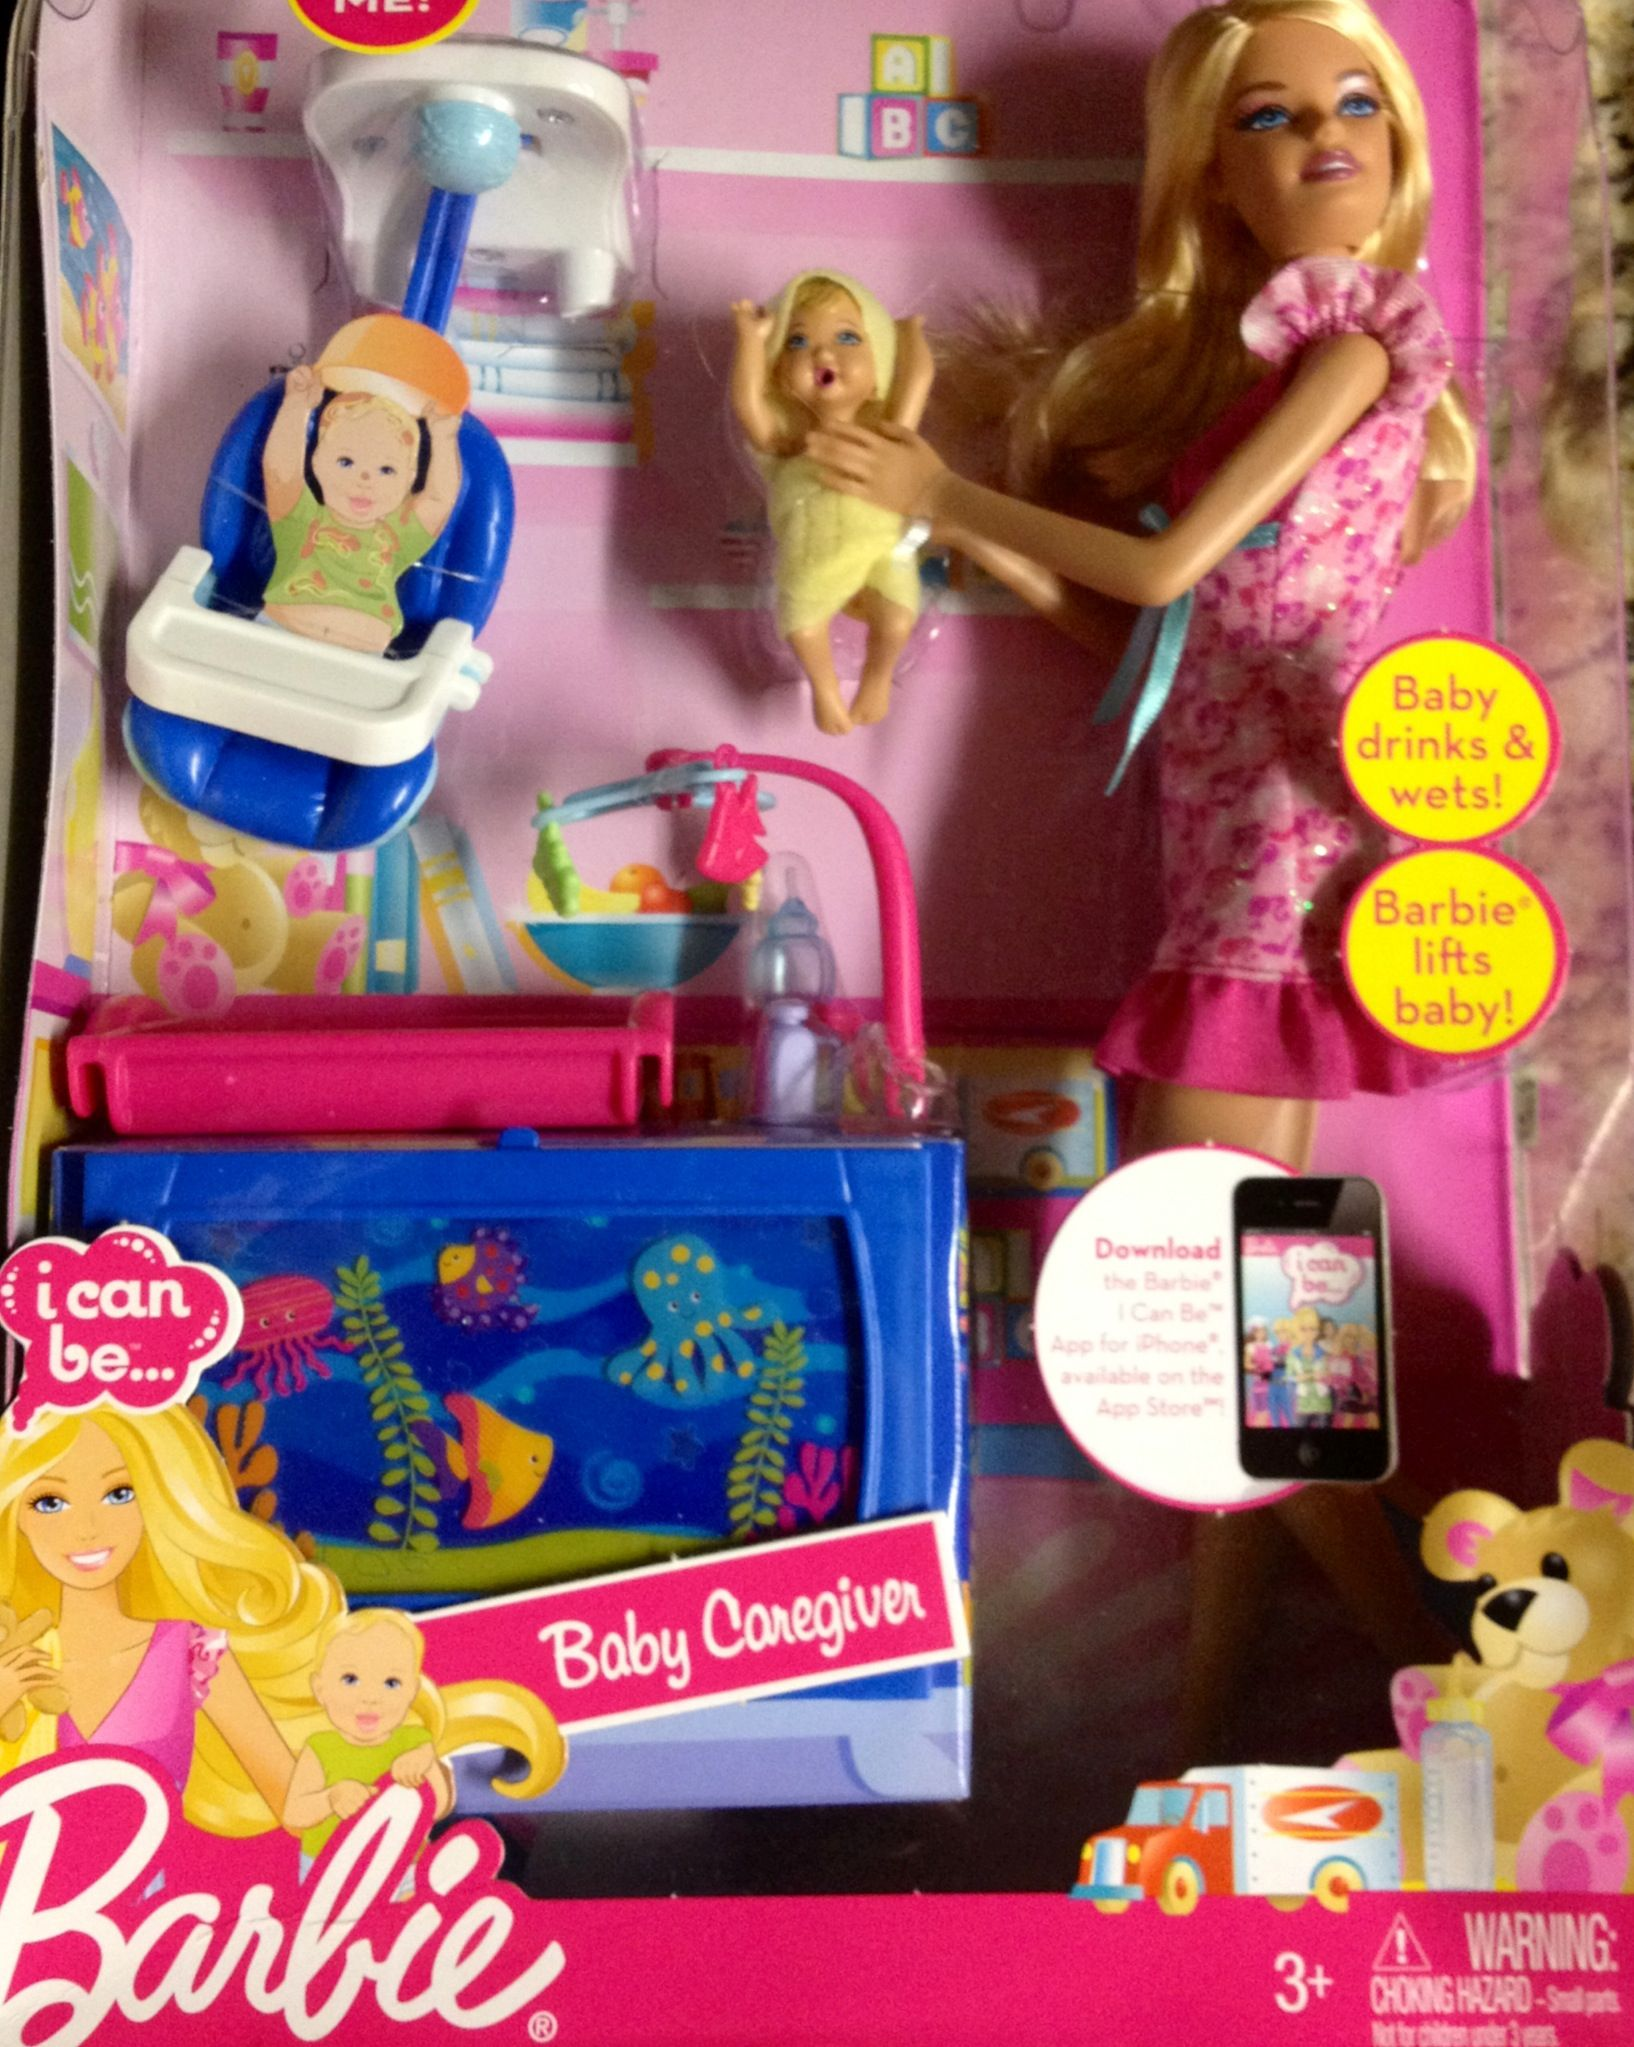 Caregiver / Mother / Barbie doll and baby with Play set